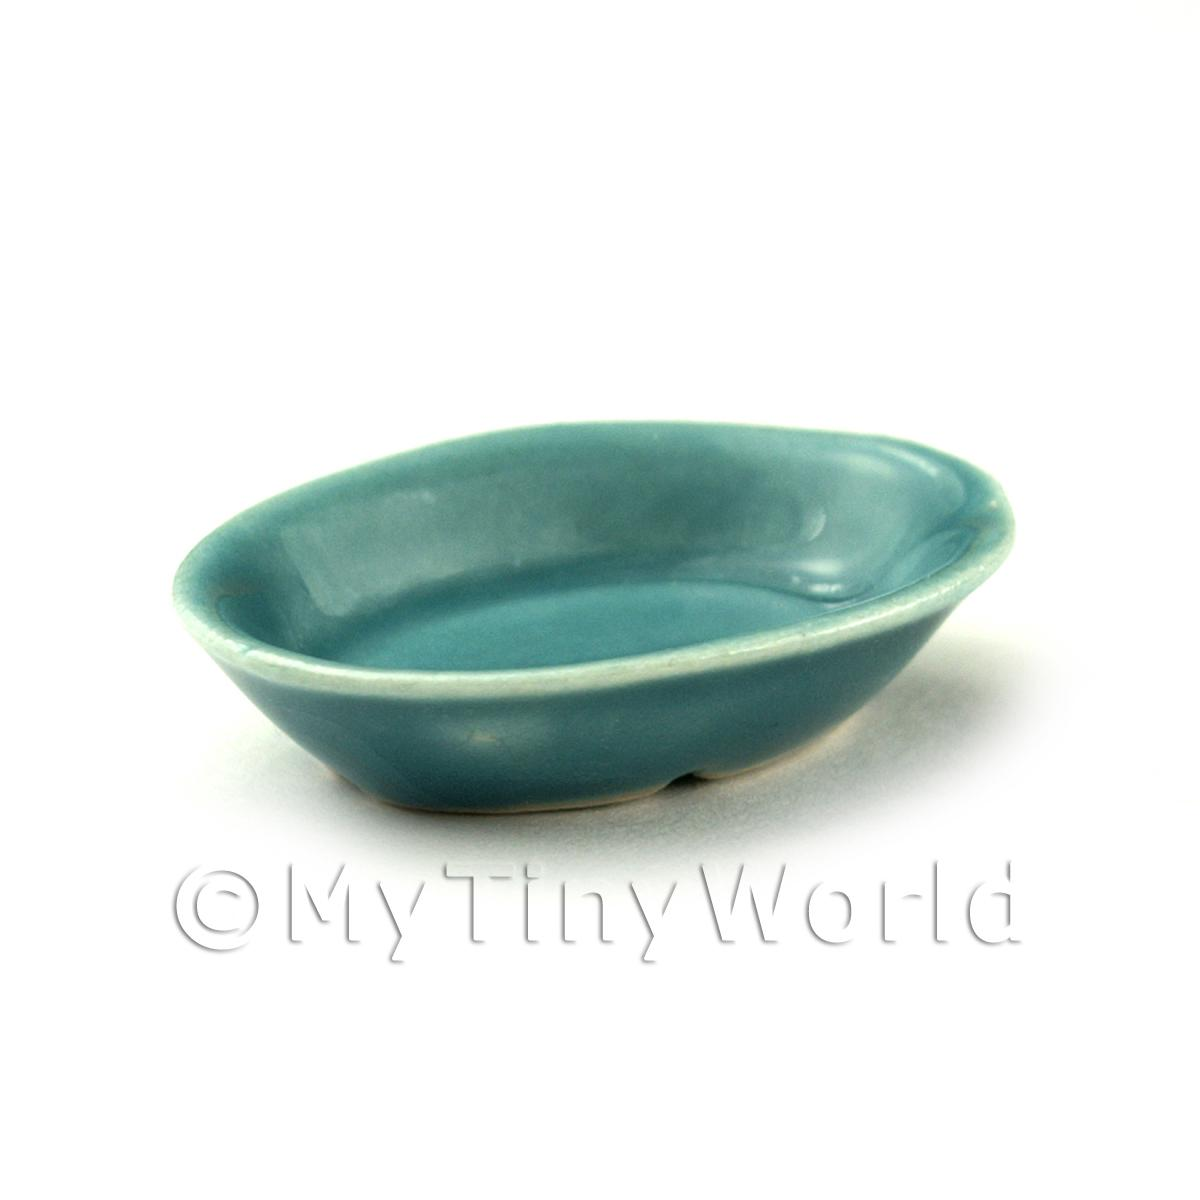 Miniature 35mm Aquamarine Ceramic Serving Dish